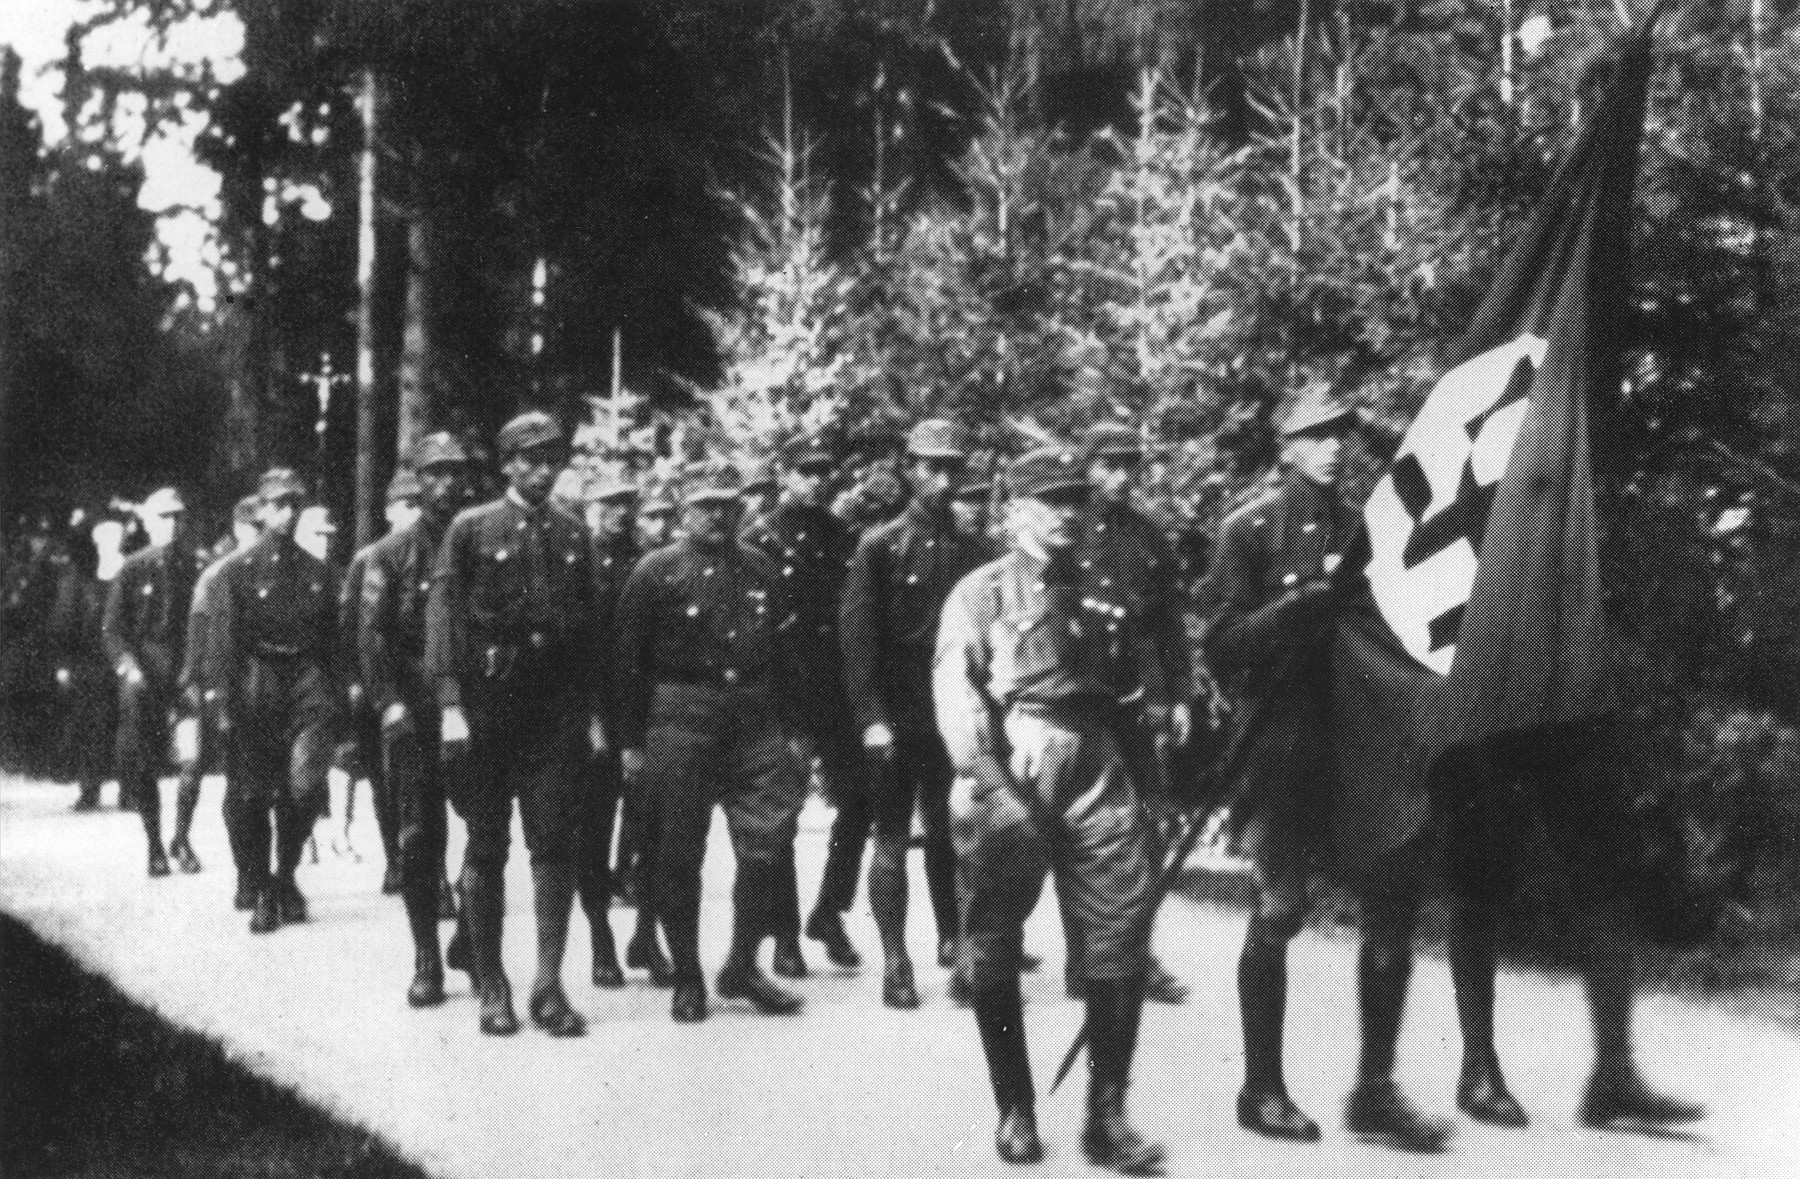 Members of the SA march in a funeral procession at a cemetery in Munich.